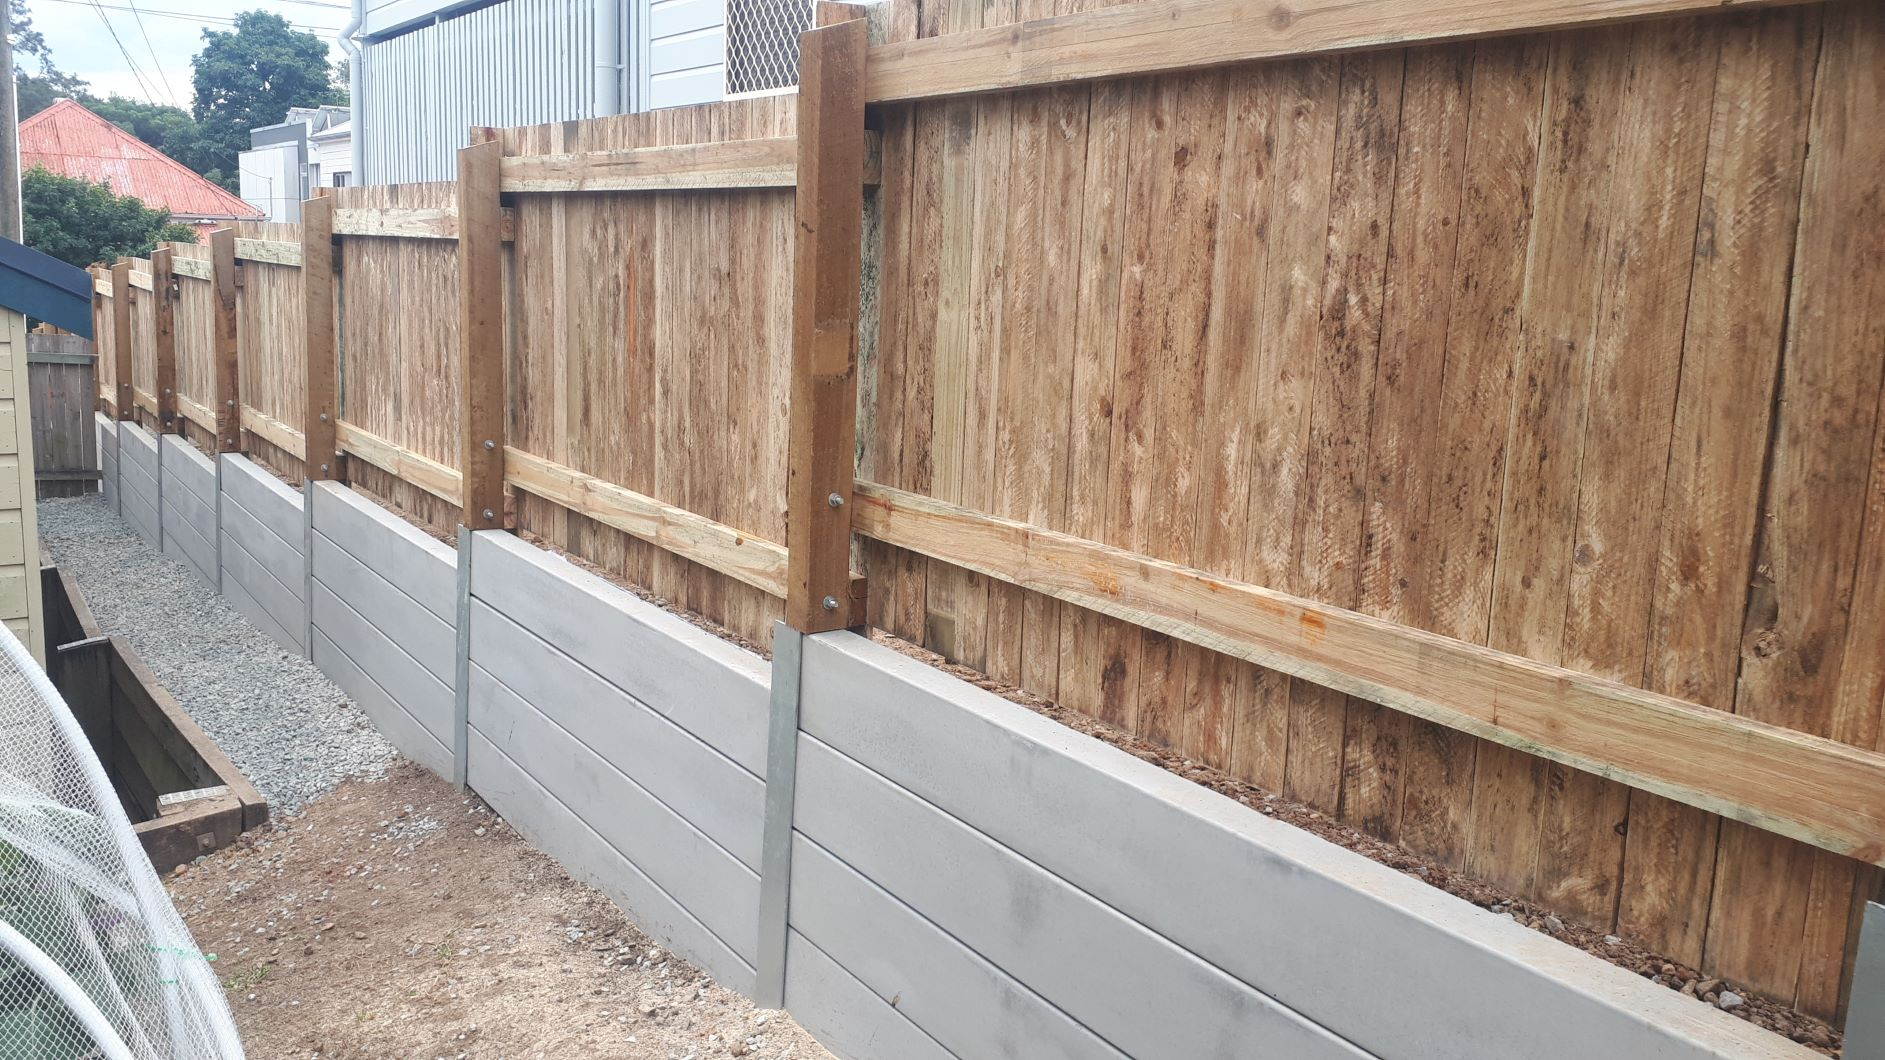 Durawall retaining wall and timber fence